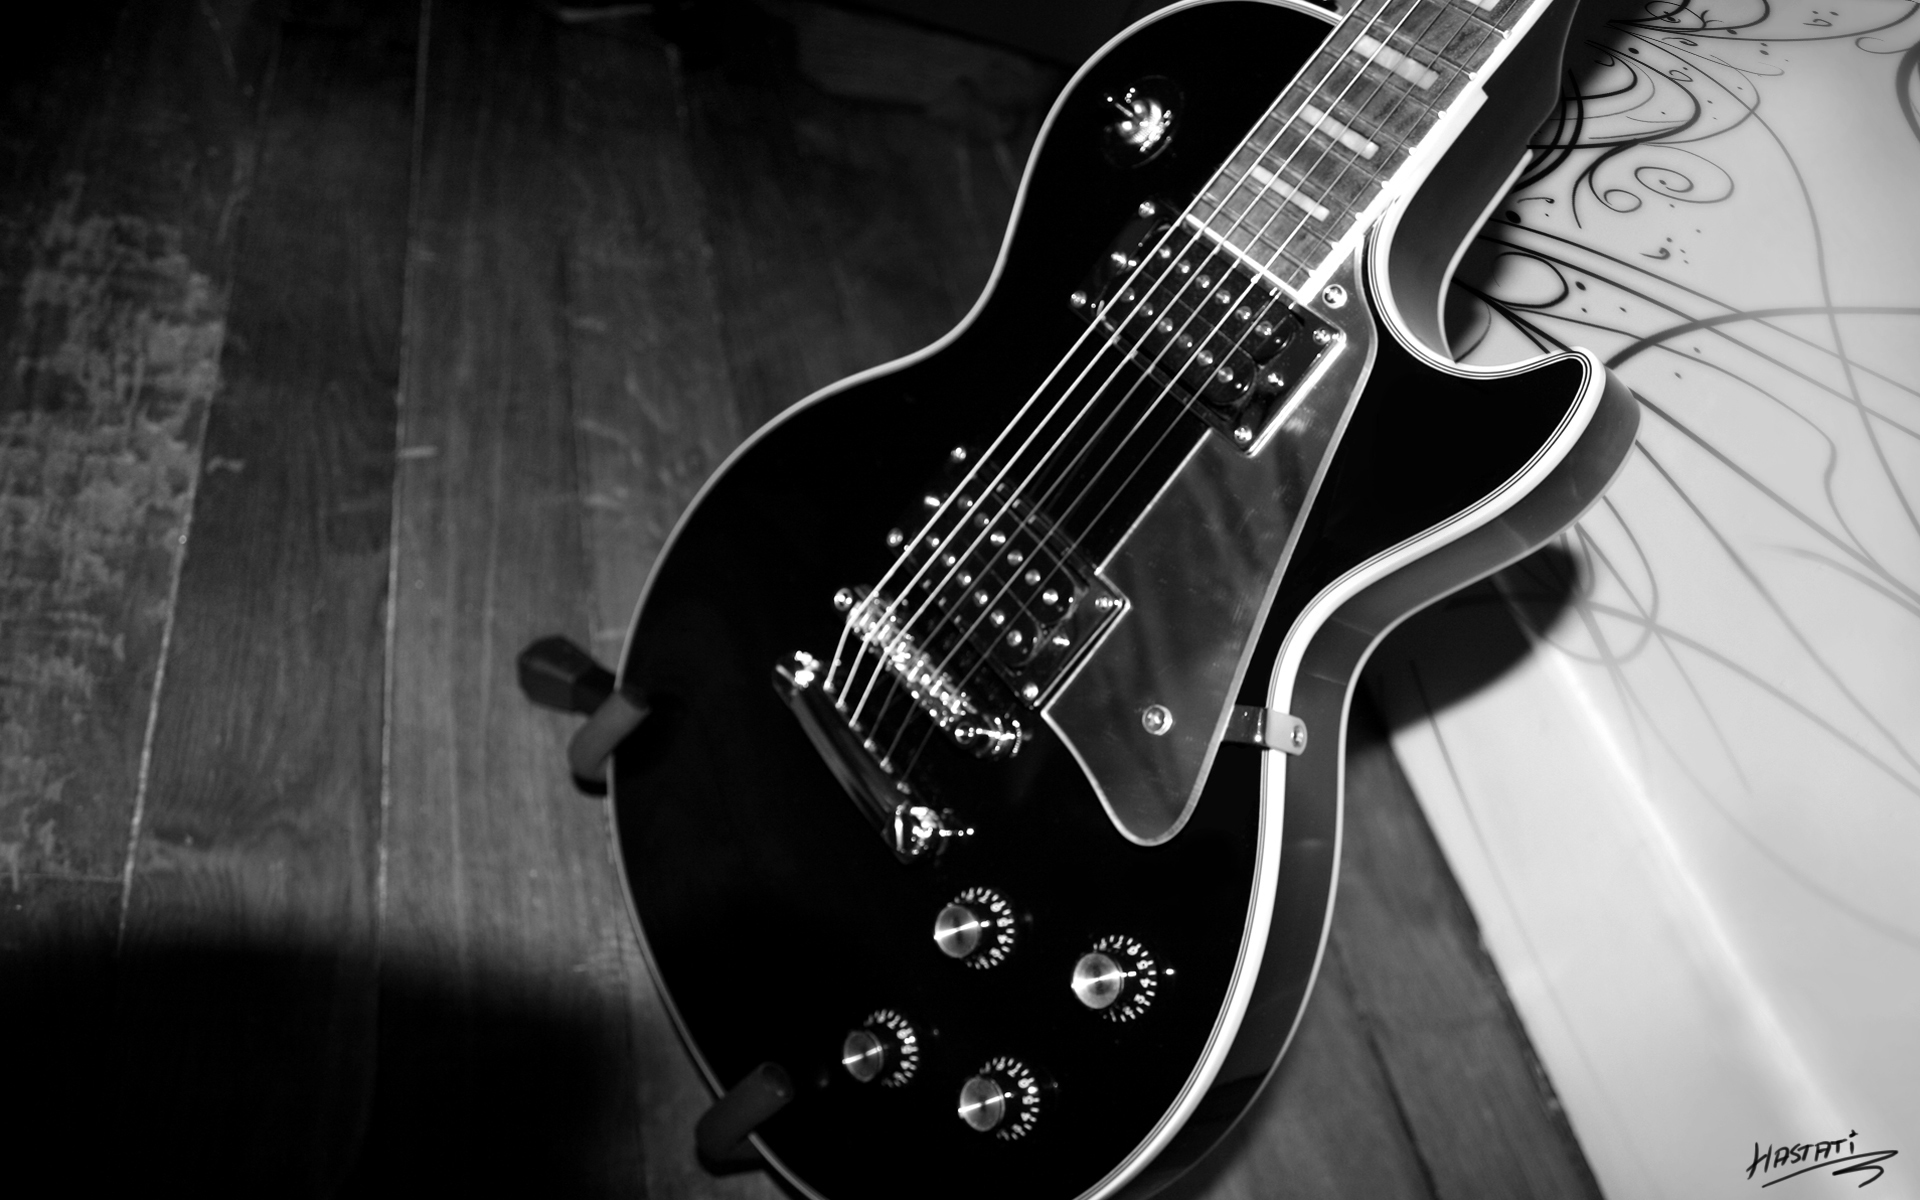 Music Guitar Wallpapers Hd Desktop And Mobile Backgrounds: Guitar Wallpapers High Quality